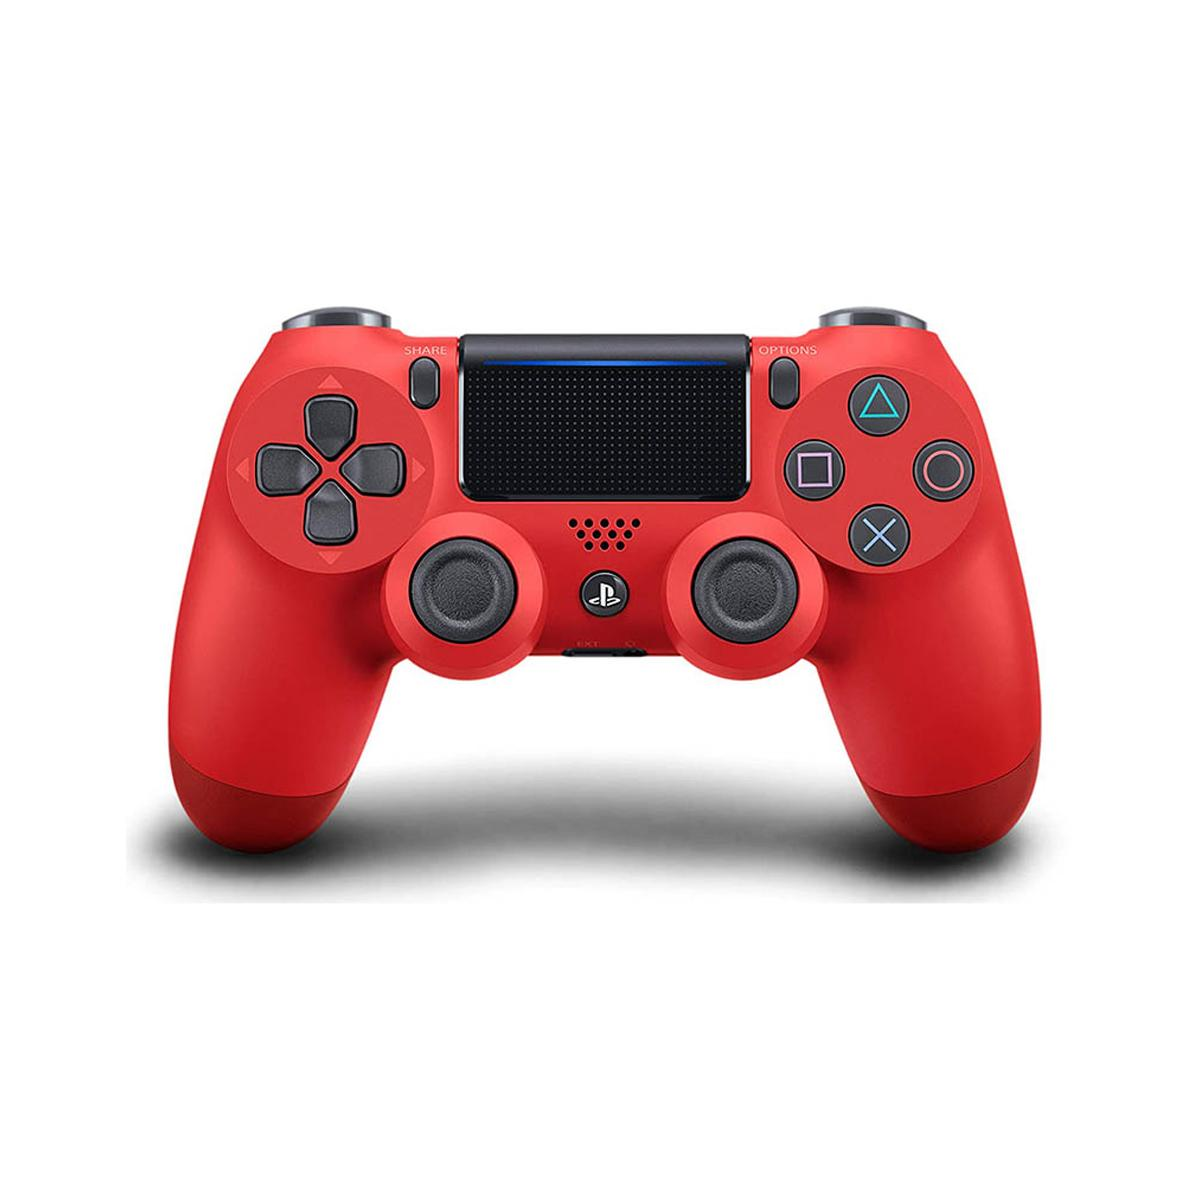 Sony PS4 Wireless Controller - Red